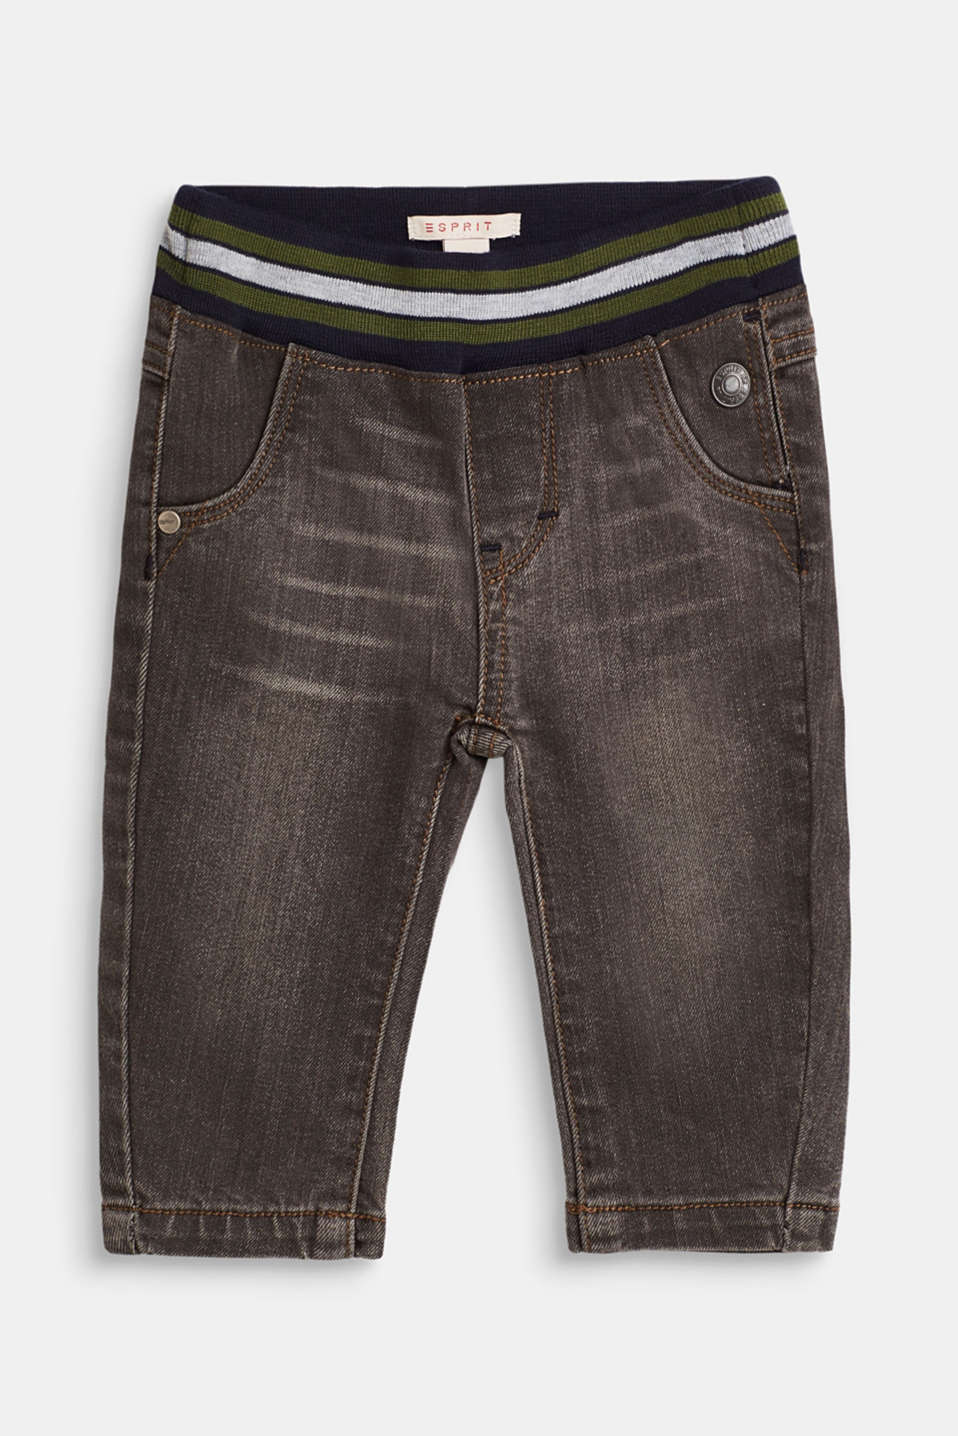 Esprit - Stretch jeans with a ribbed elasticated waistband